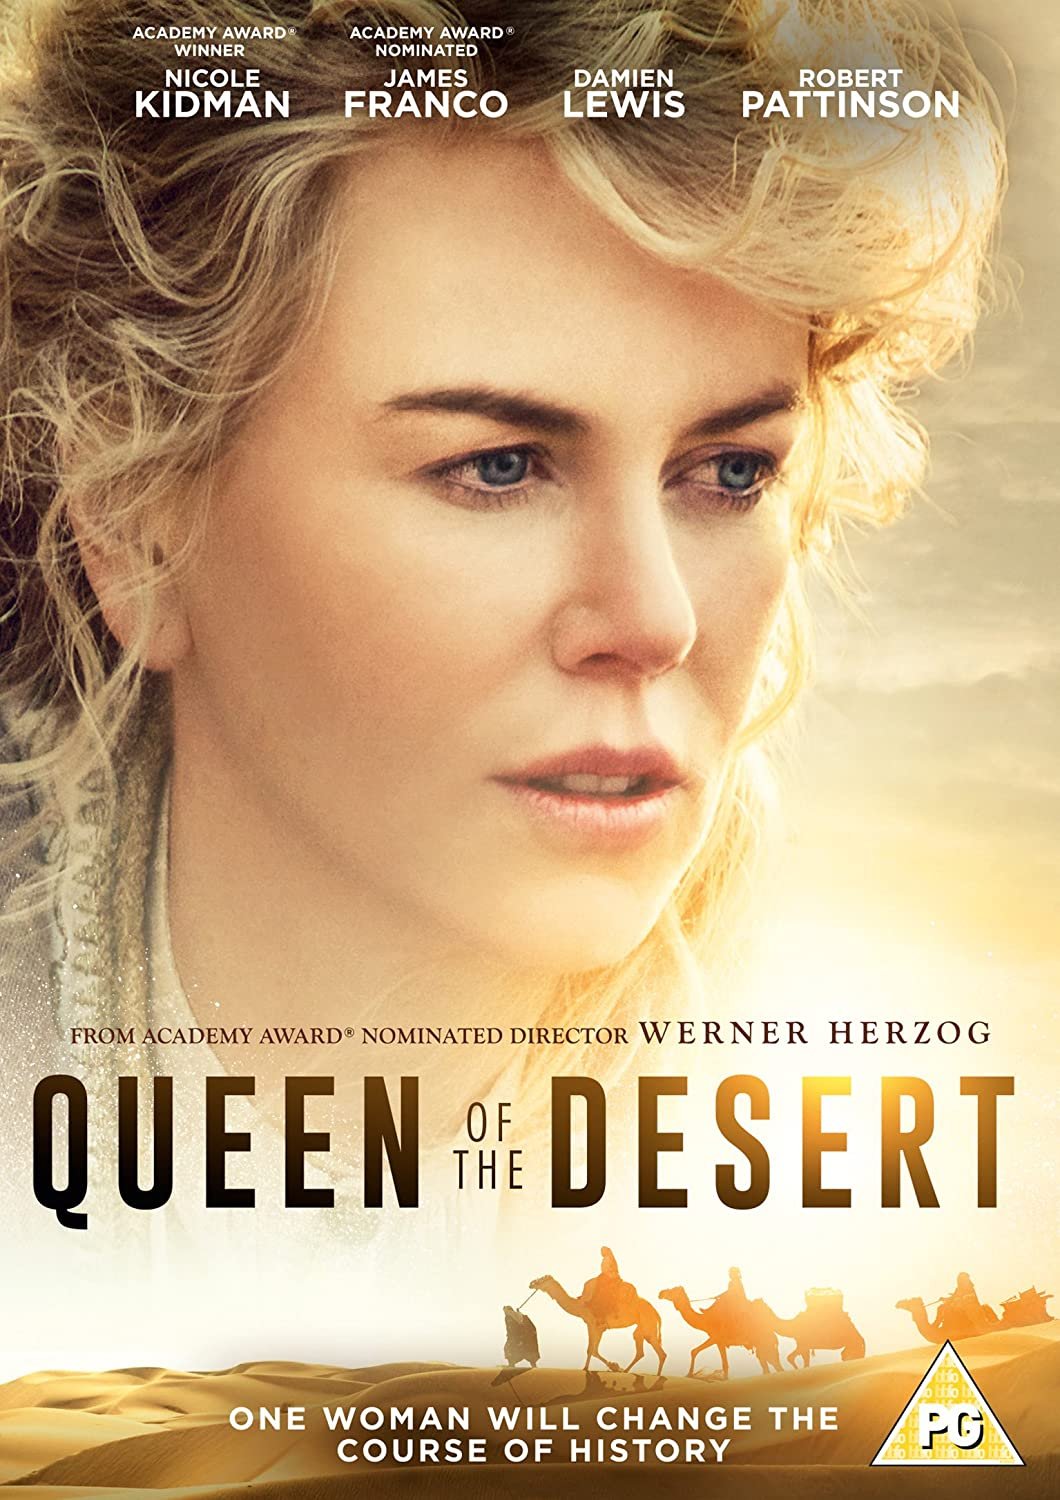 Amazon.com: Queen of the Desert [DVD]: Movies & TV